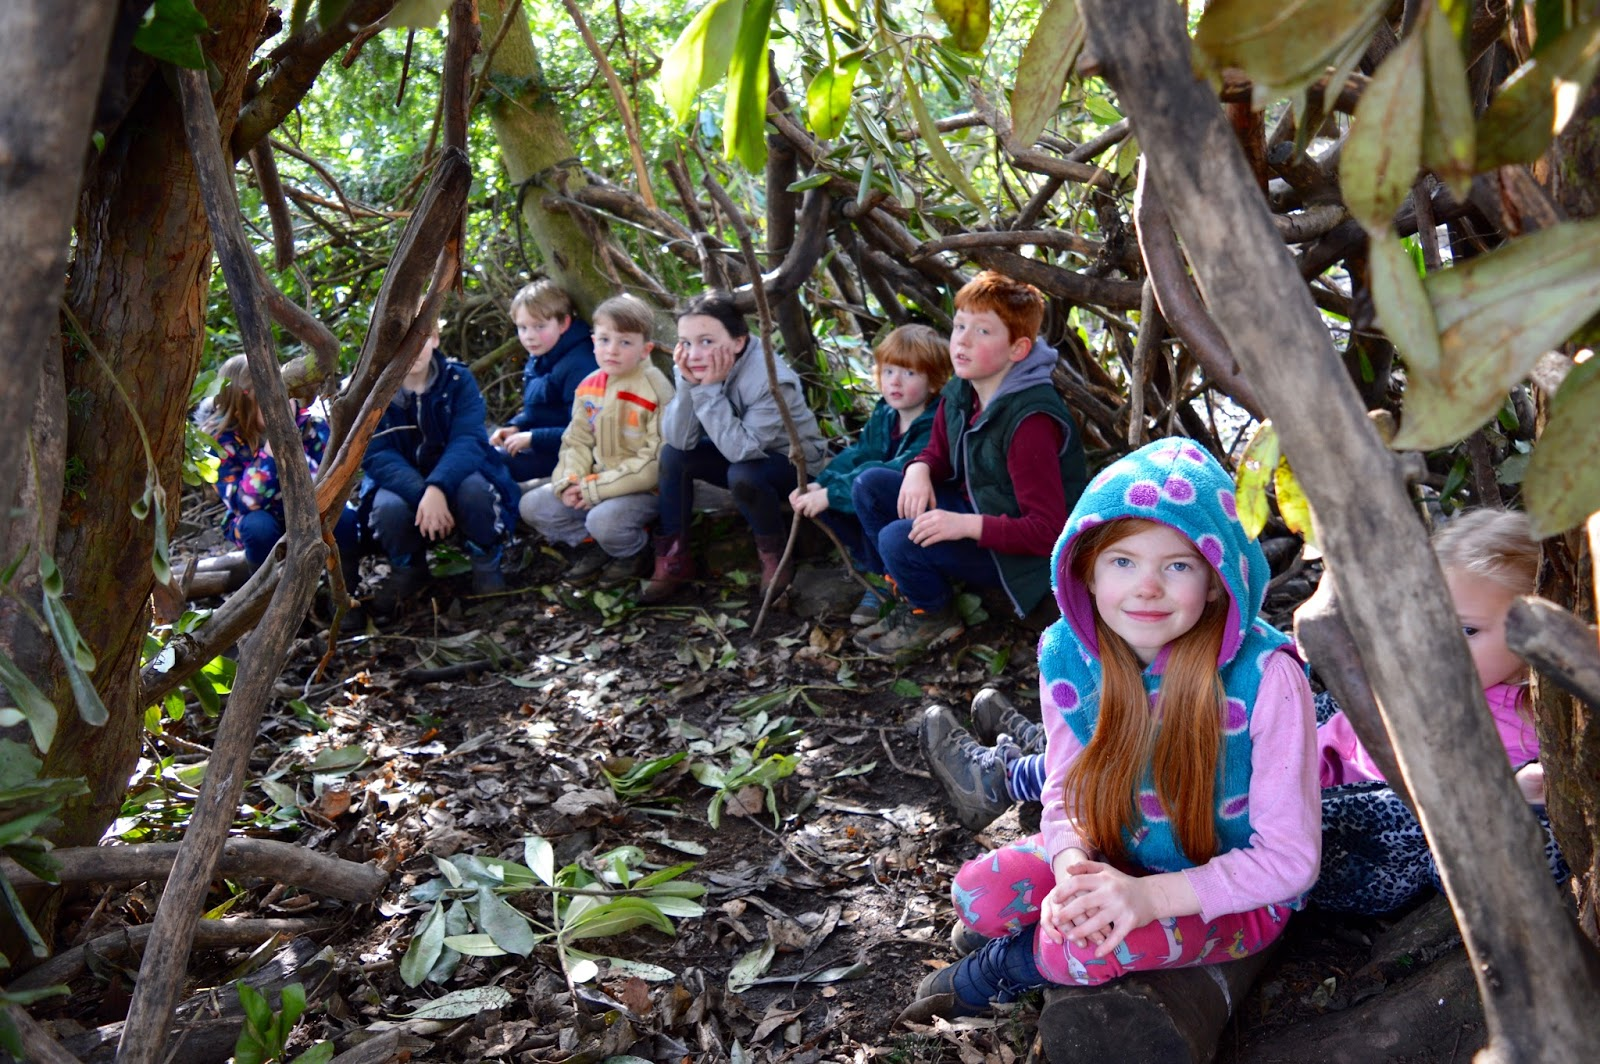 Beamish Wild | School Holiday Club & Activities in County Durham | North East England - kids in their den